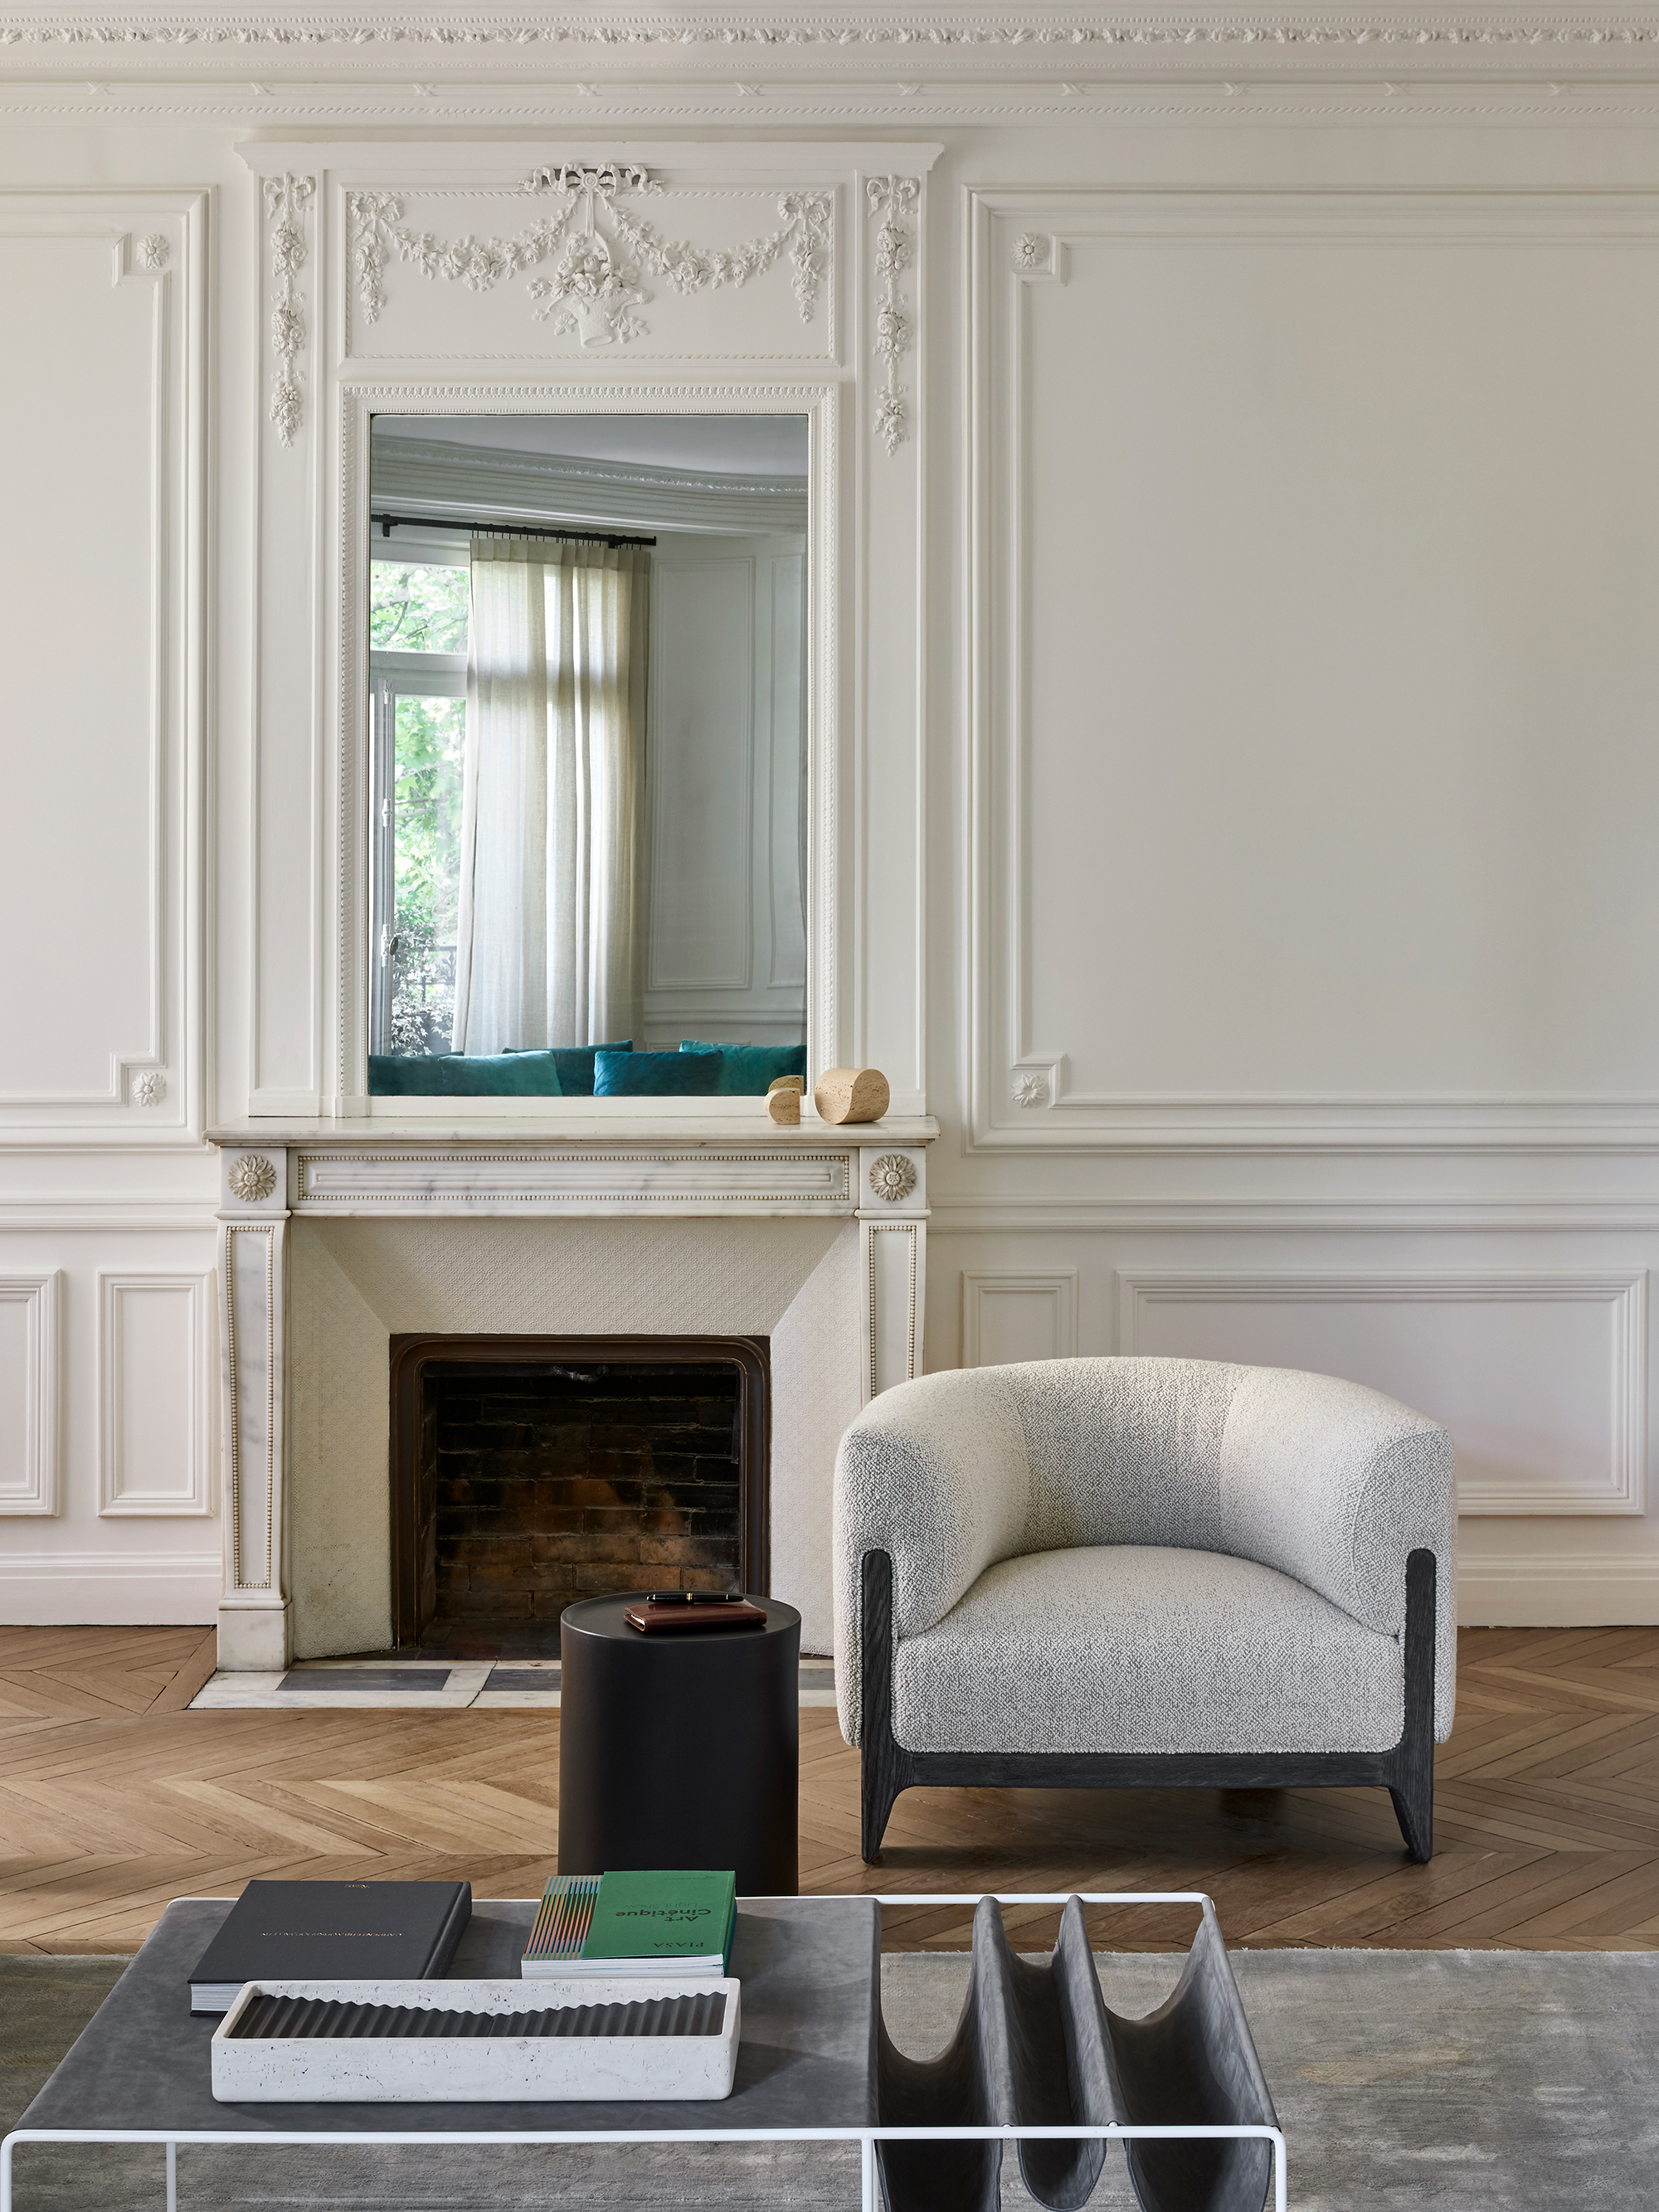 Declourt Collection - BOB chair - SUE low table - IKO side table